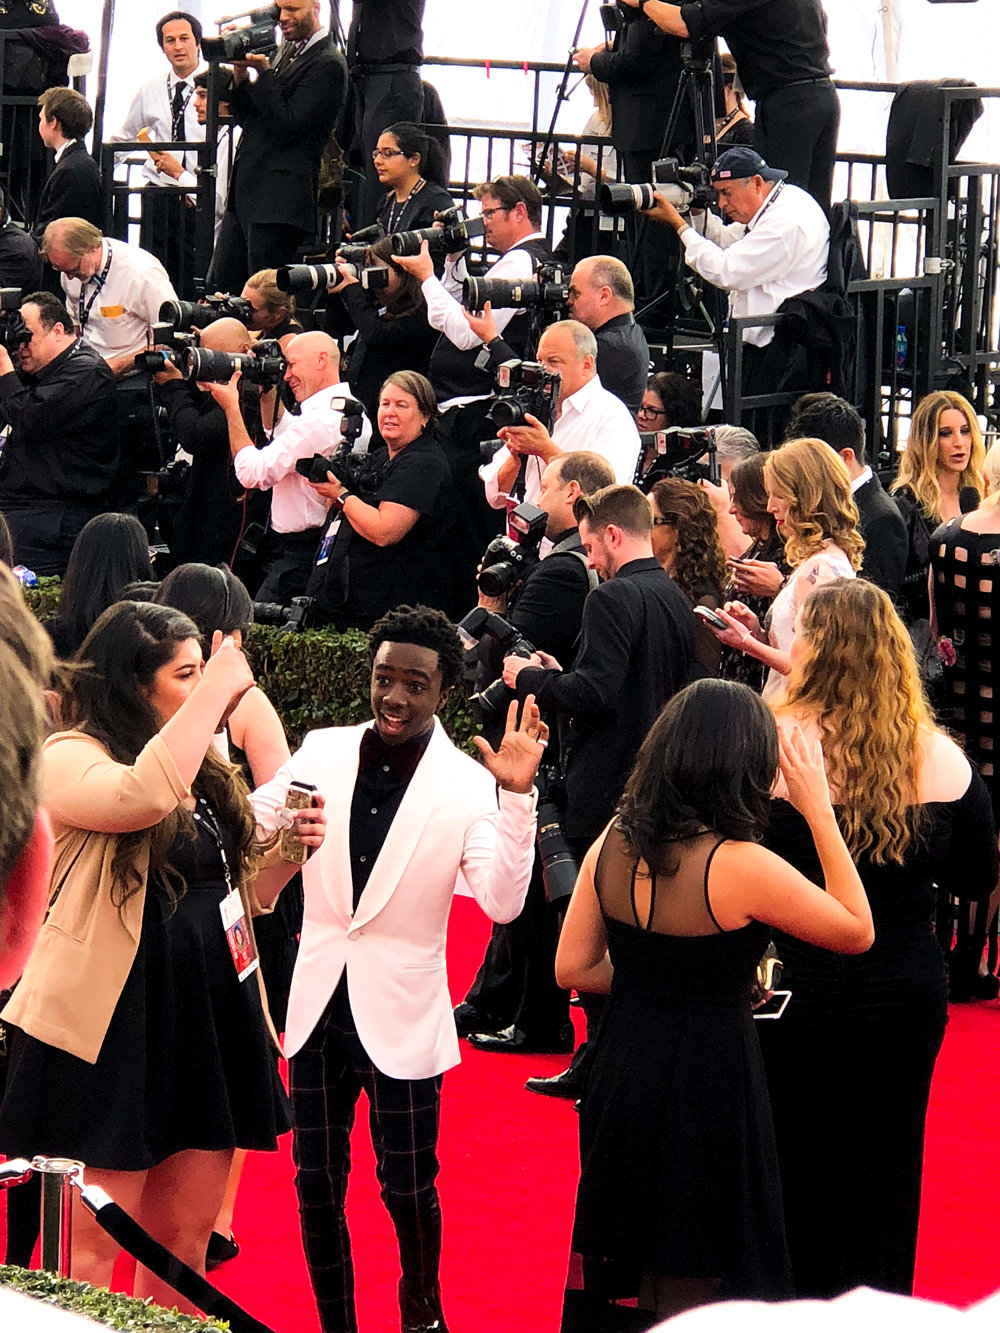 Caleb McLaughlin Having Fun With the Crowd - wearing Louis Vuitton (jacket), Antonio Marras (pants)